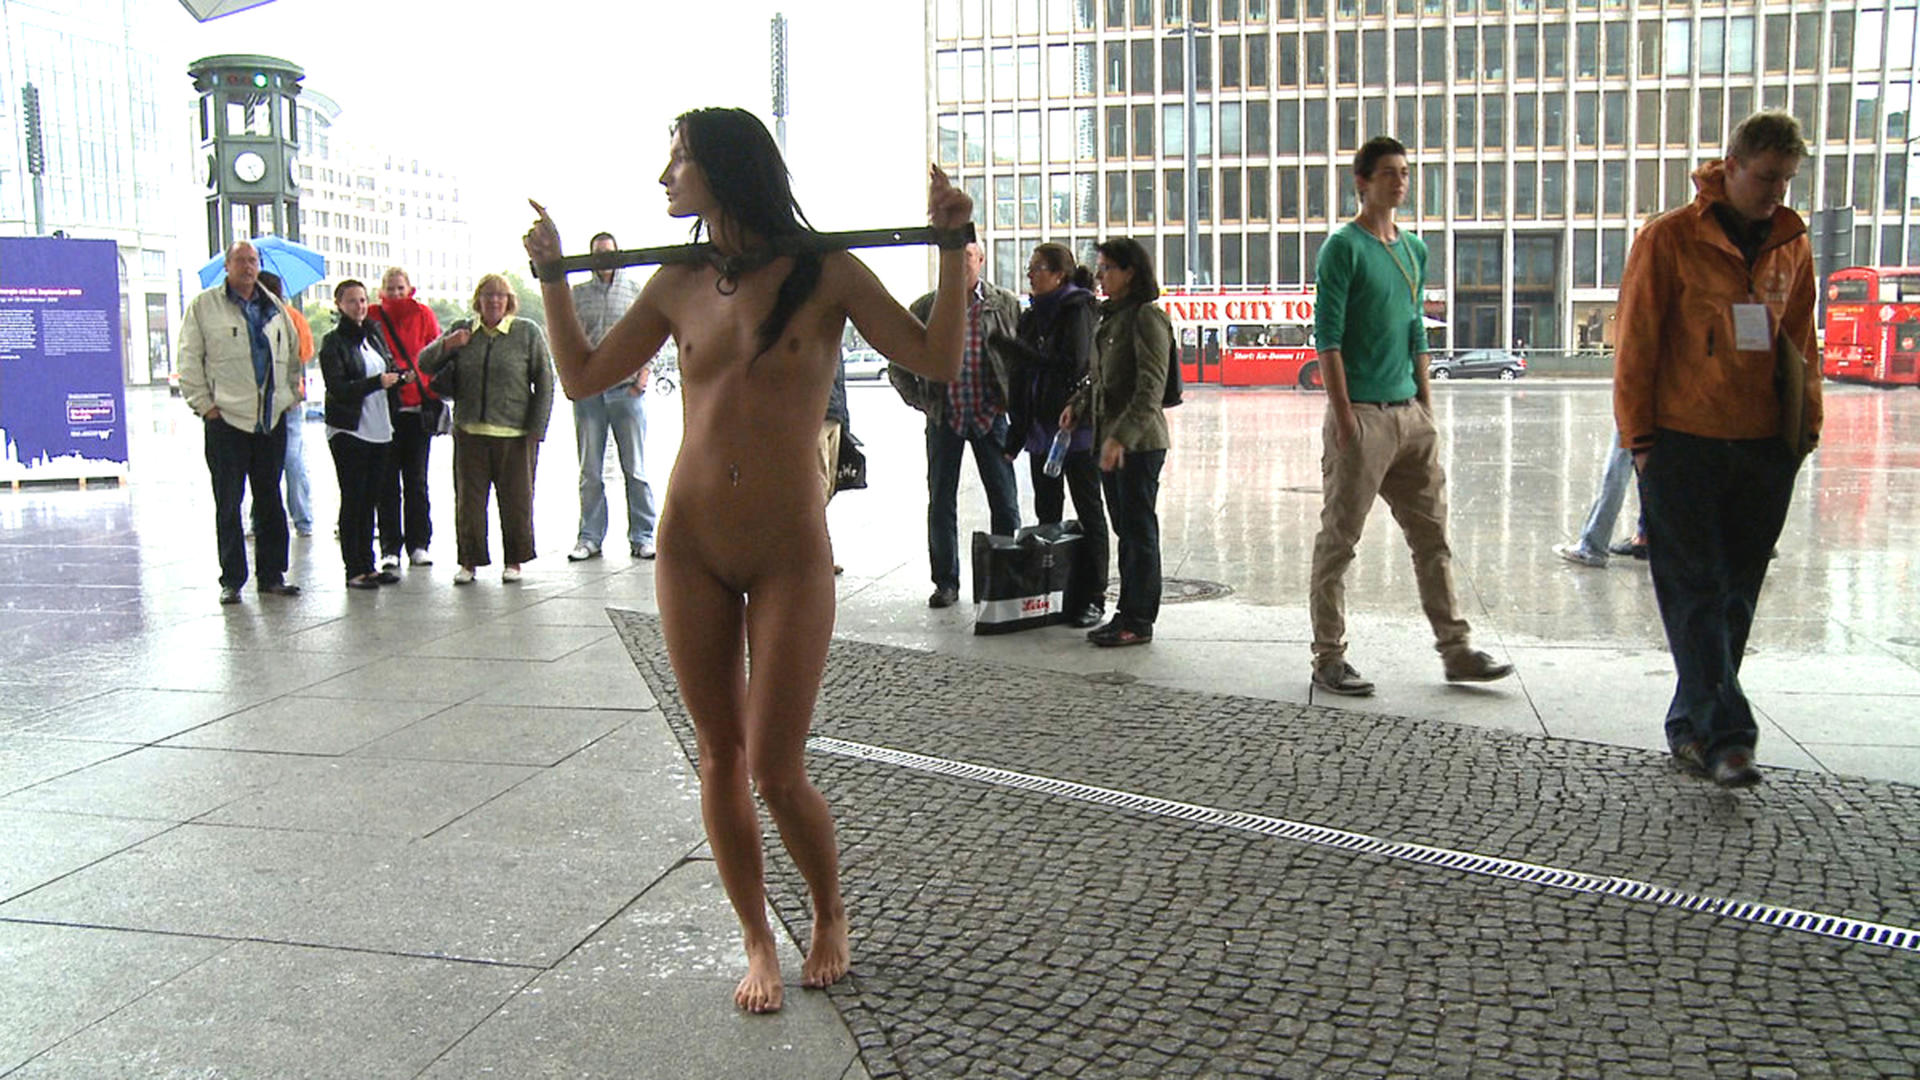 public handcuffed in Naked girls